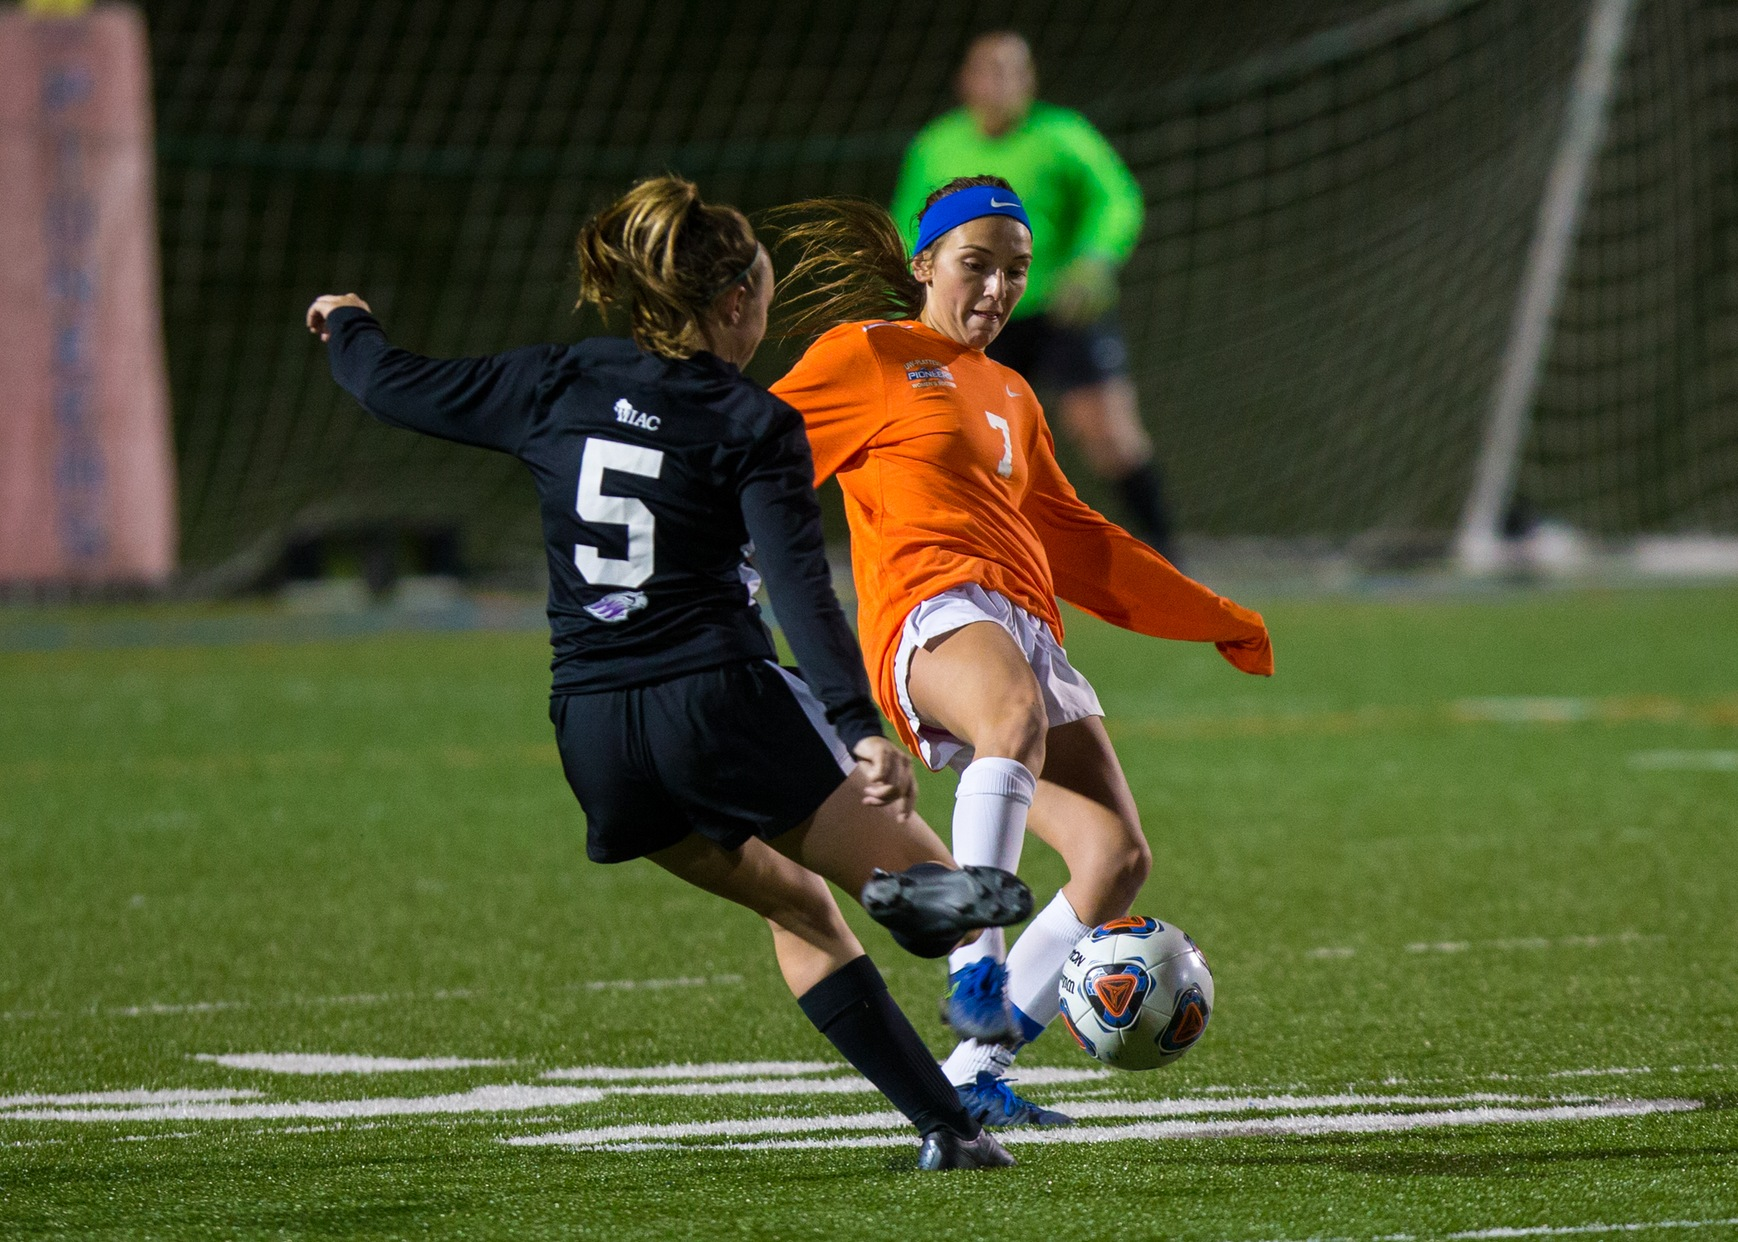 Pioneers fall 1-0 to visiting Warhawks